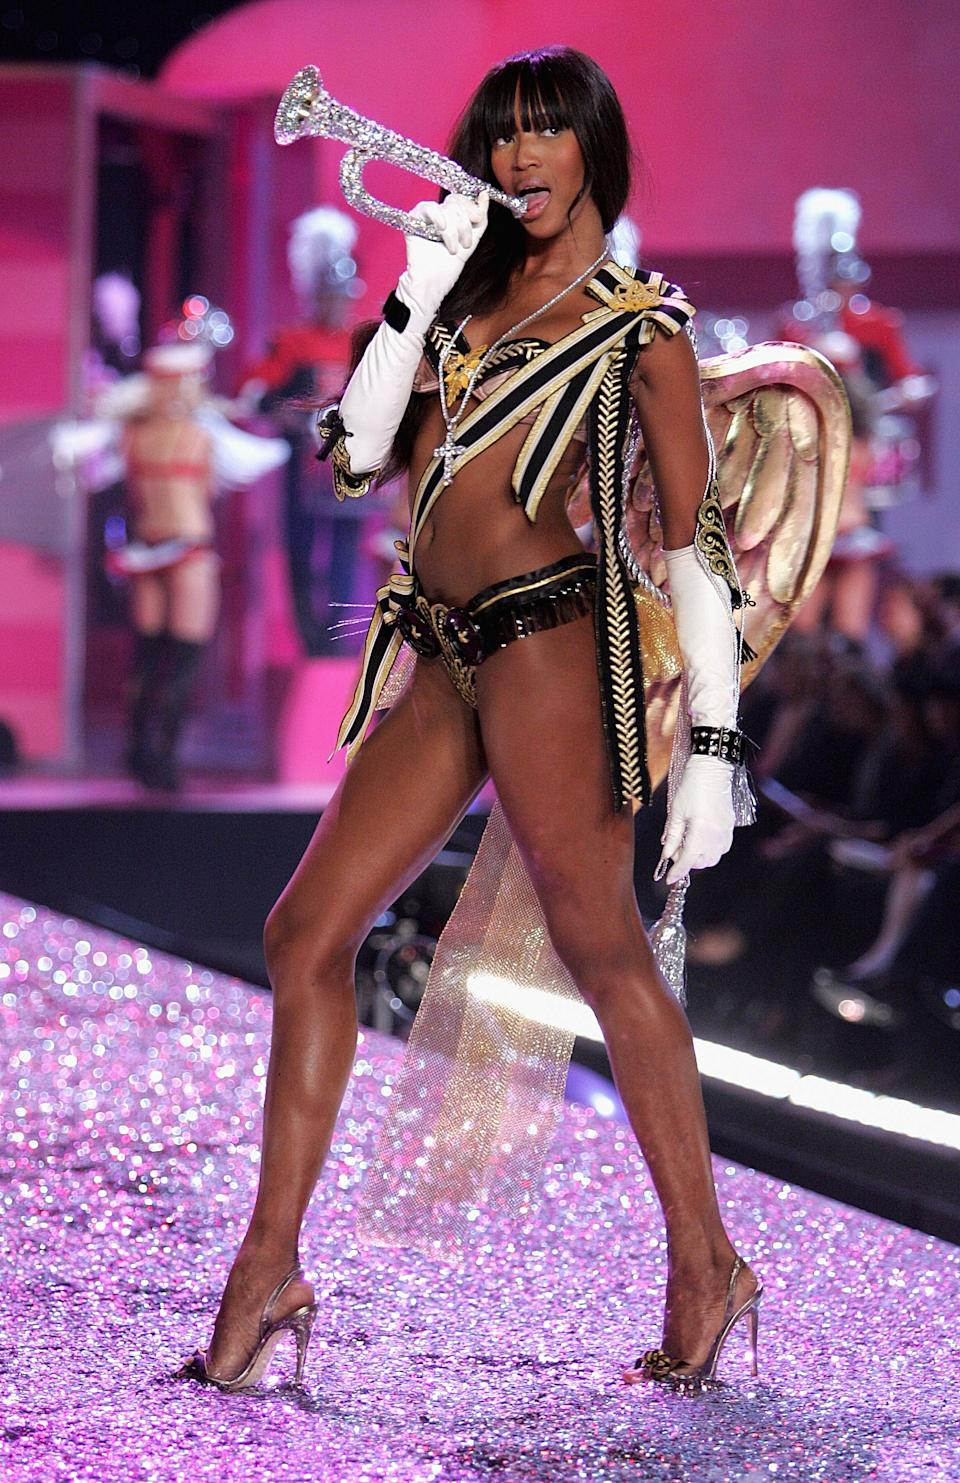 Campbell stole the show at The Victoria's Secret Fashion Show in 2005. We can't decide whether it's the gold wings, the barely there stilettos or the diamond-encrusted trumpet that makes this look so iconic. We're going with the trumpet. [Getty Images]